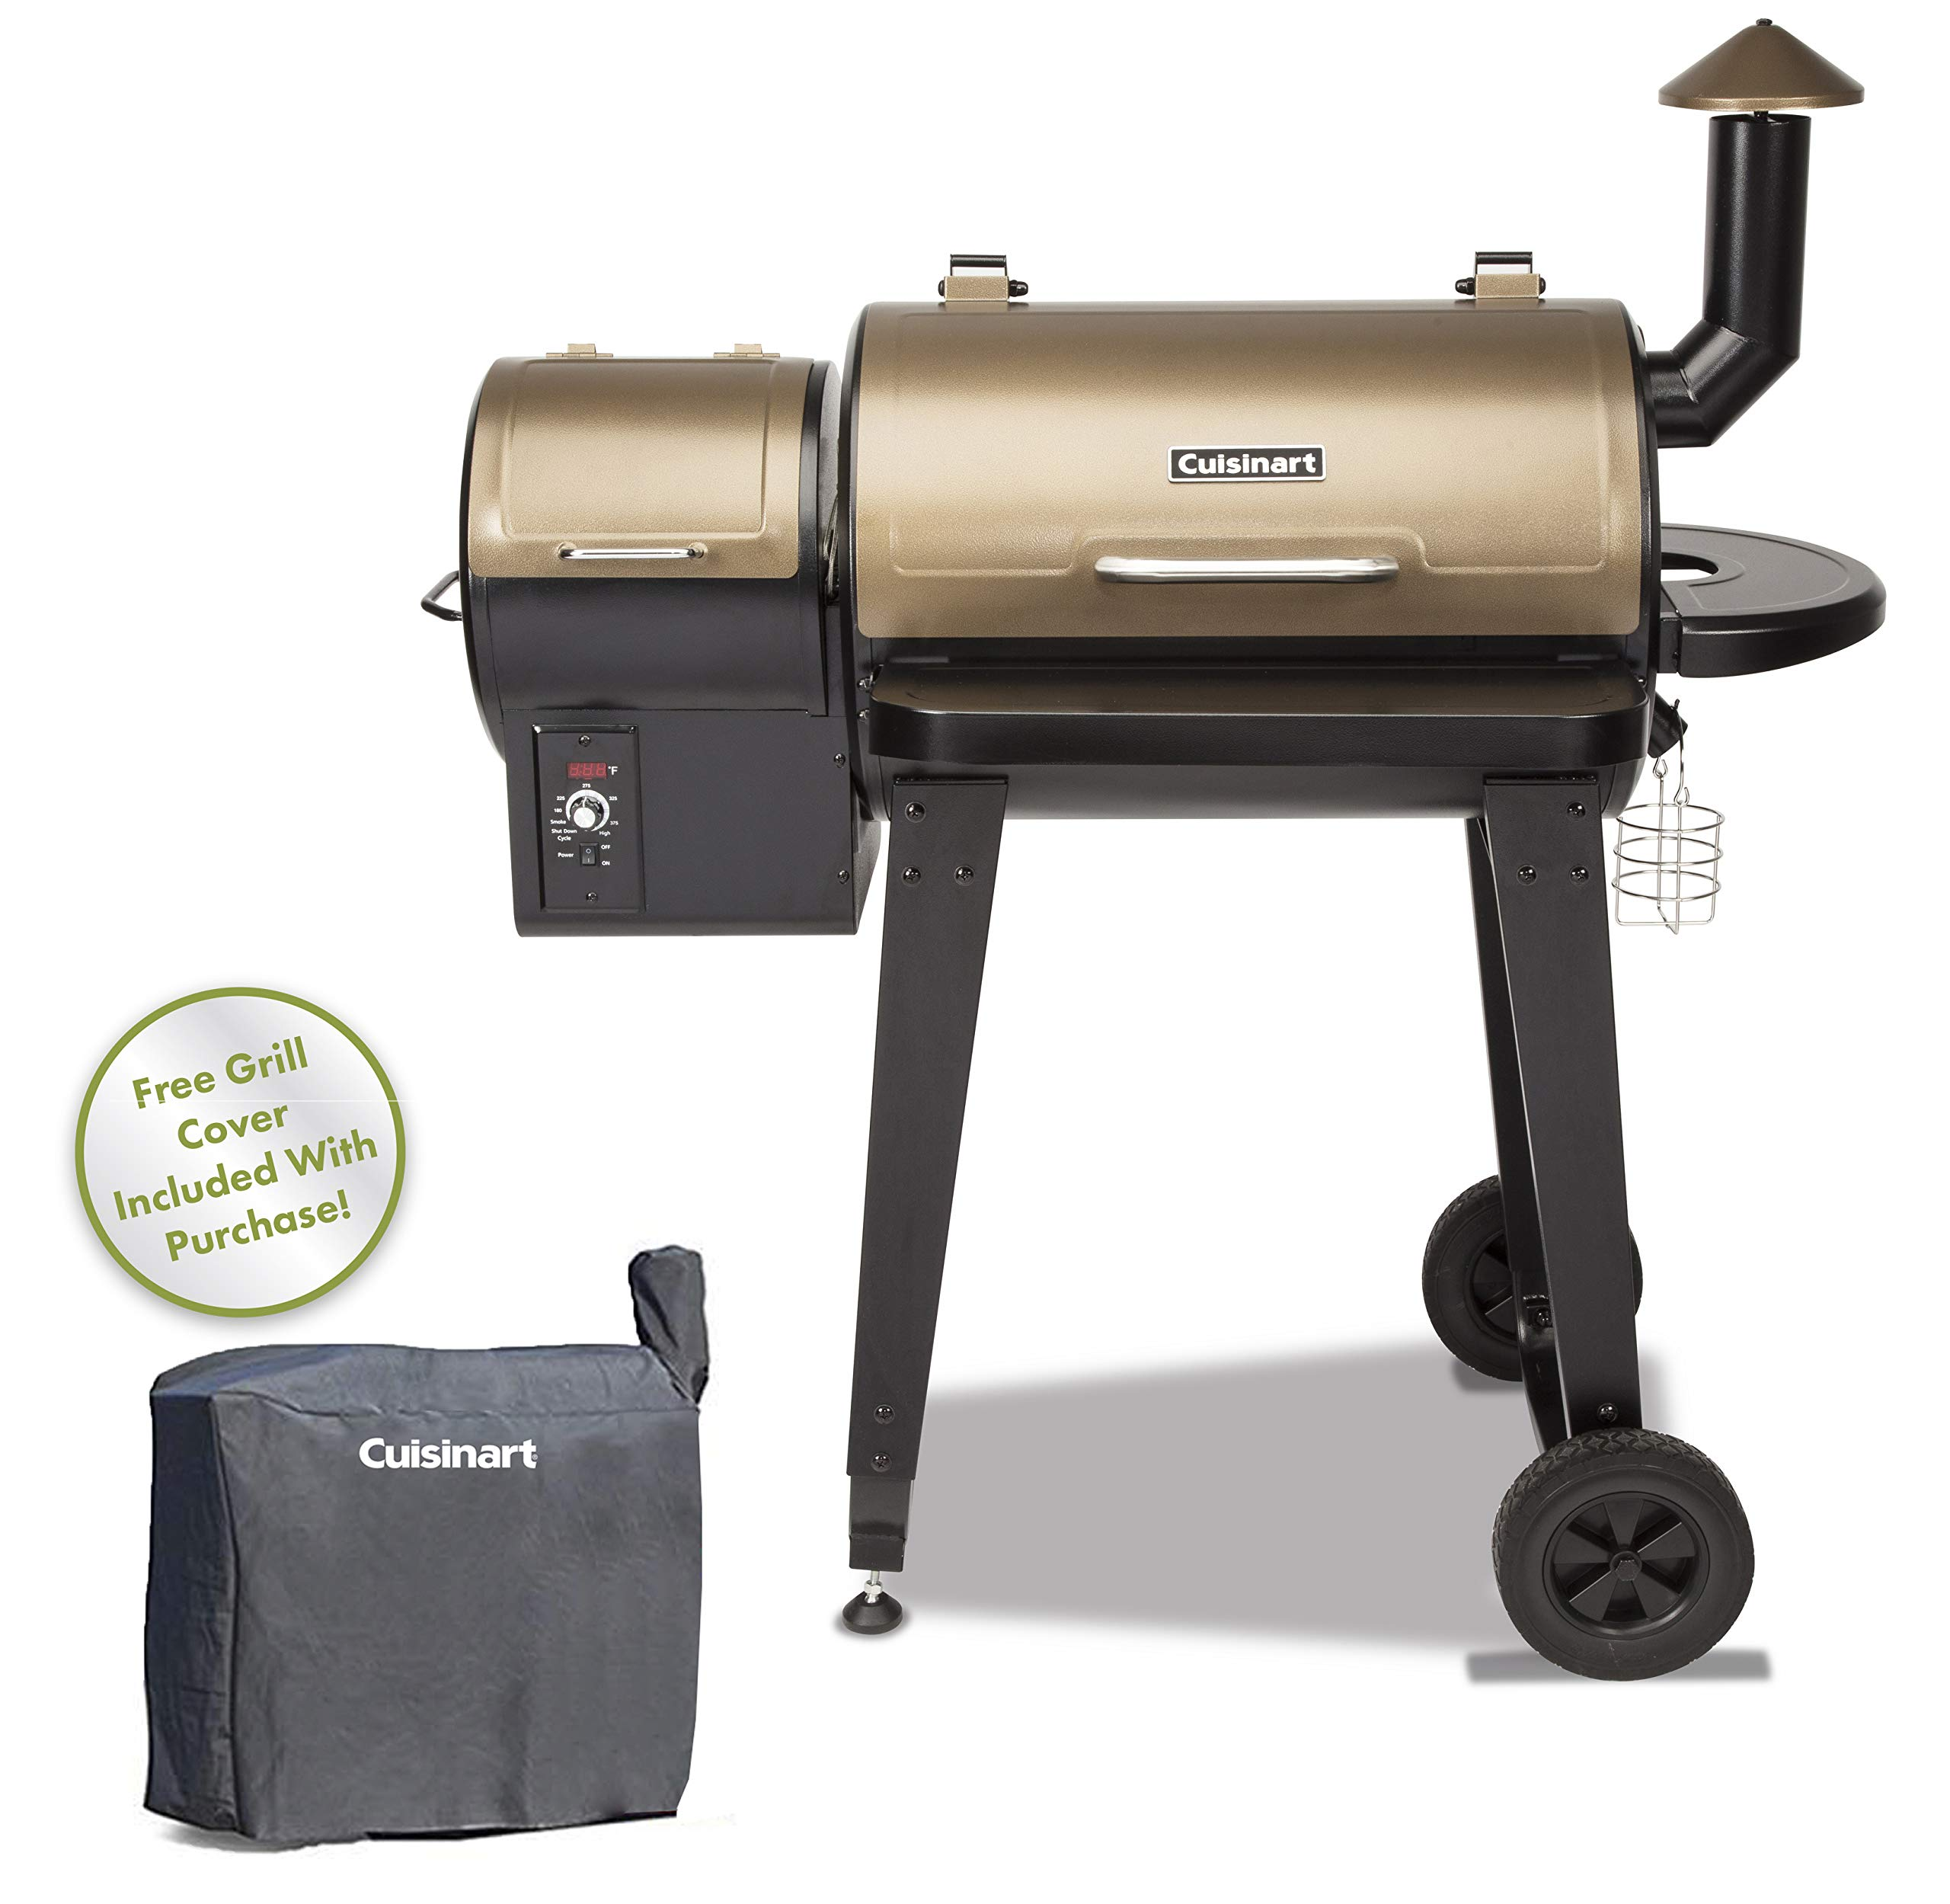 Cuisinart CPG-4000 Wood BBQ Grill & Smoker Pellet Grill and Smoker, 45'' x 49'' x 39.4'', Black by Cuisinart